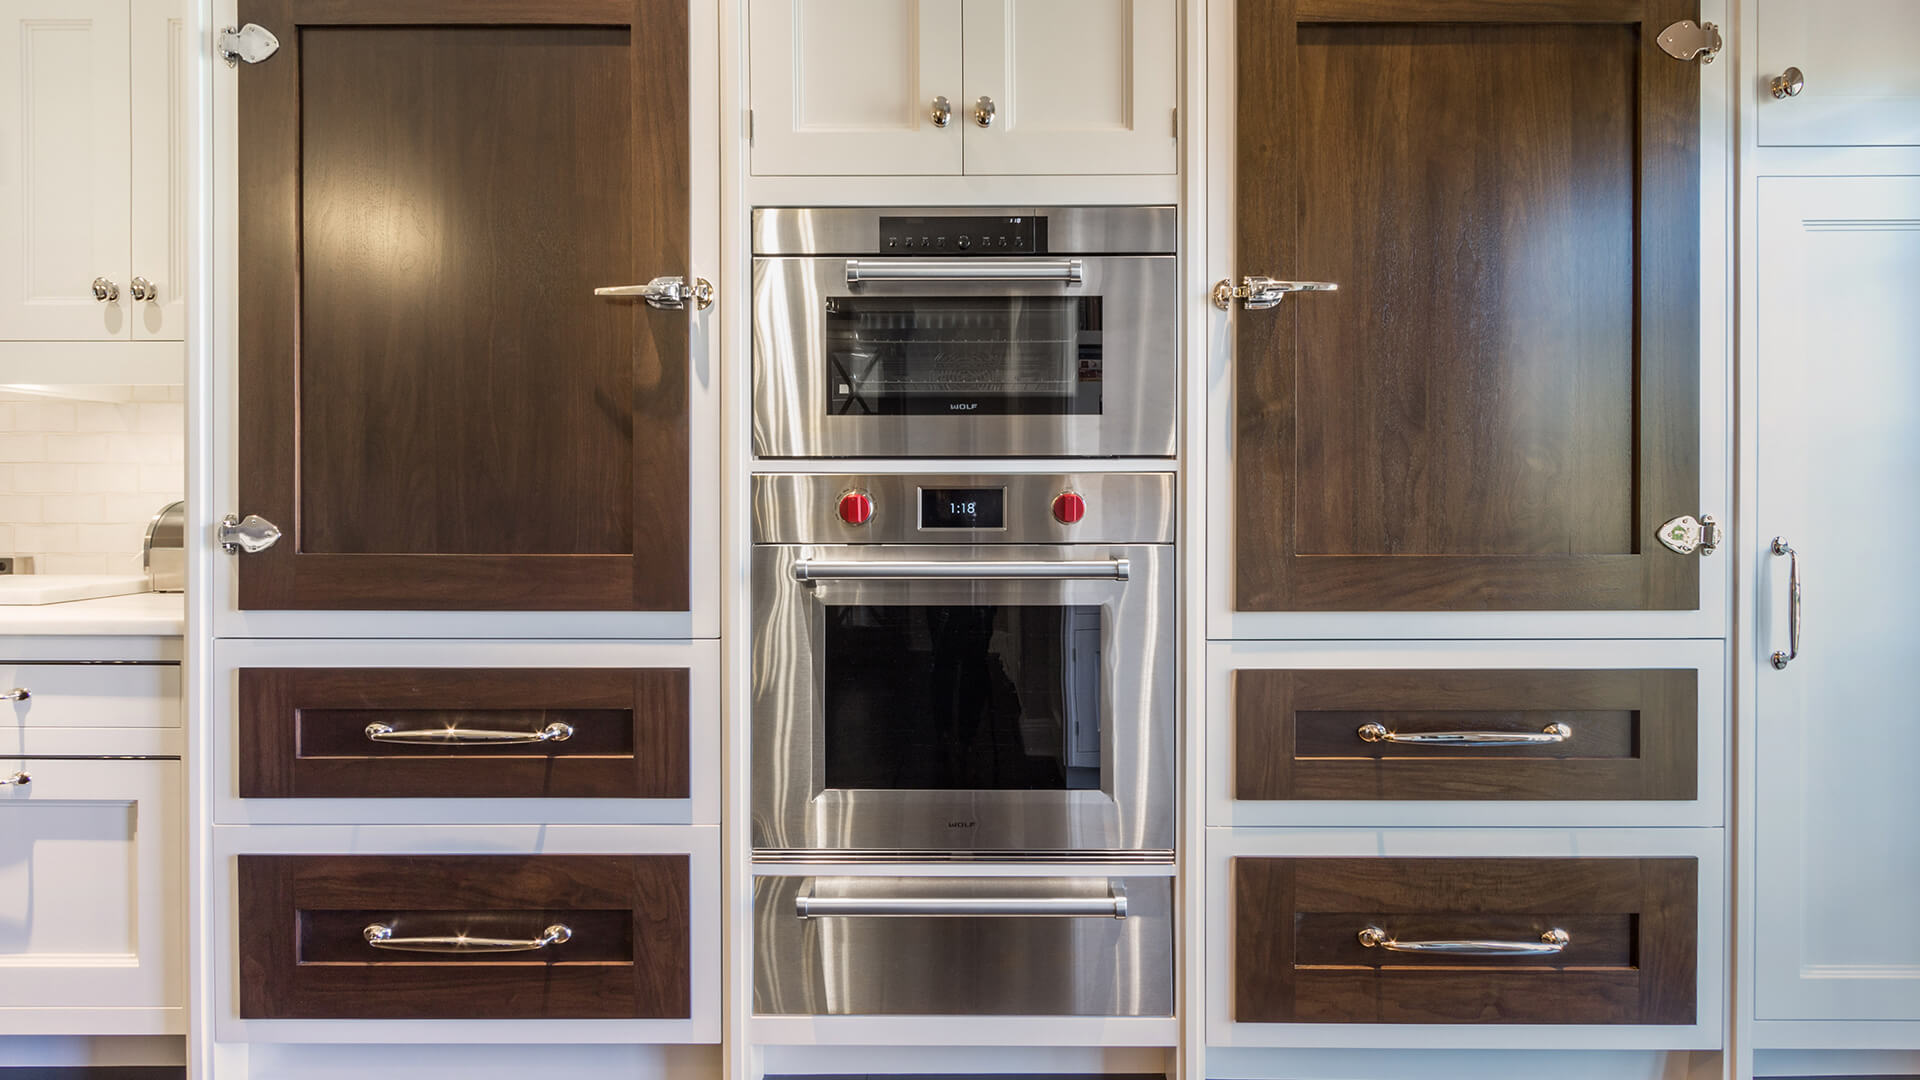 Dual refrigerator kitchen panels with inset stainless steal appliances